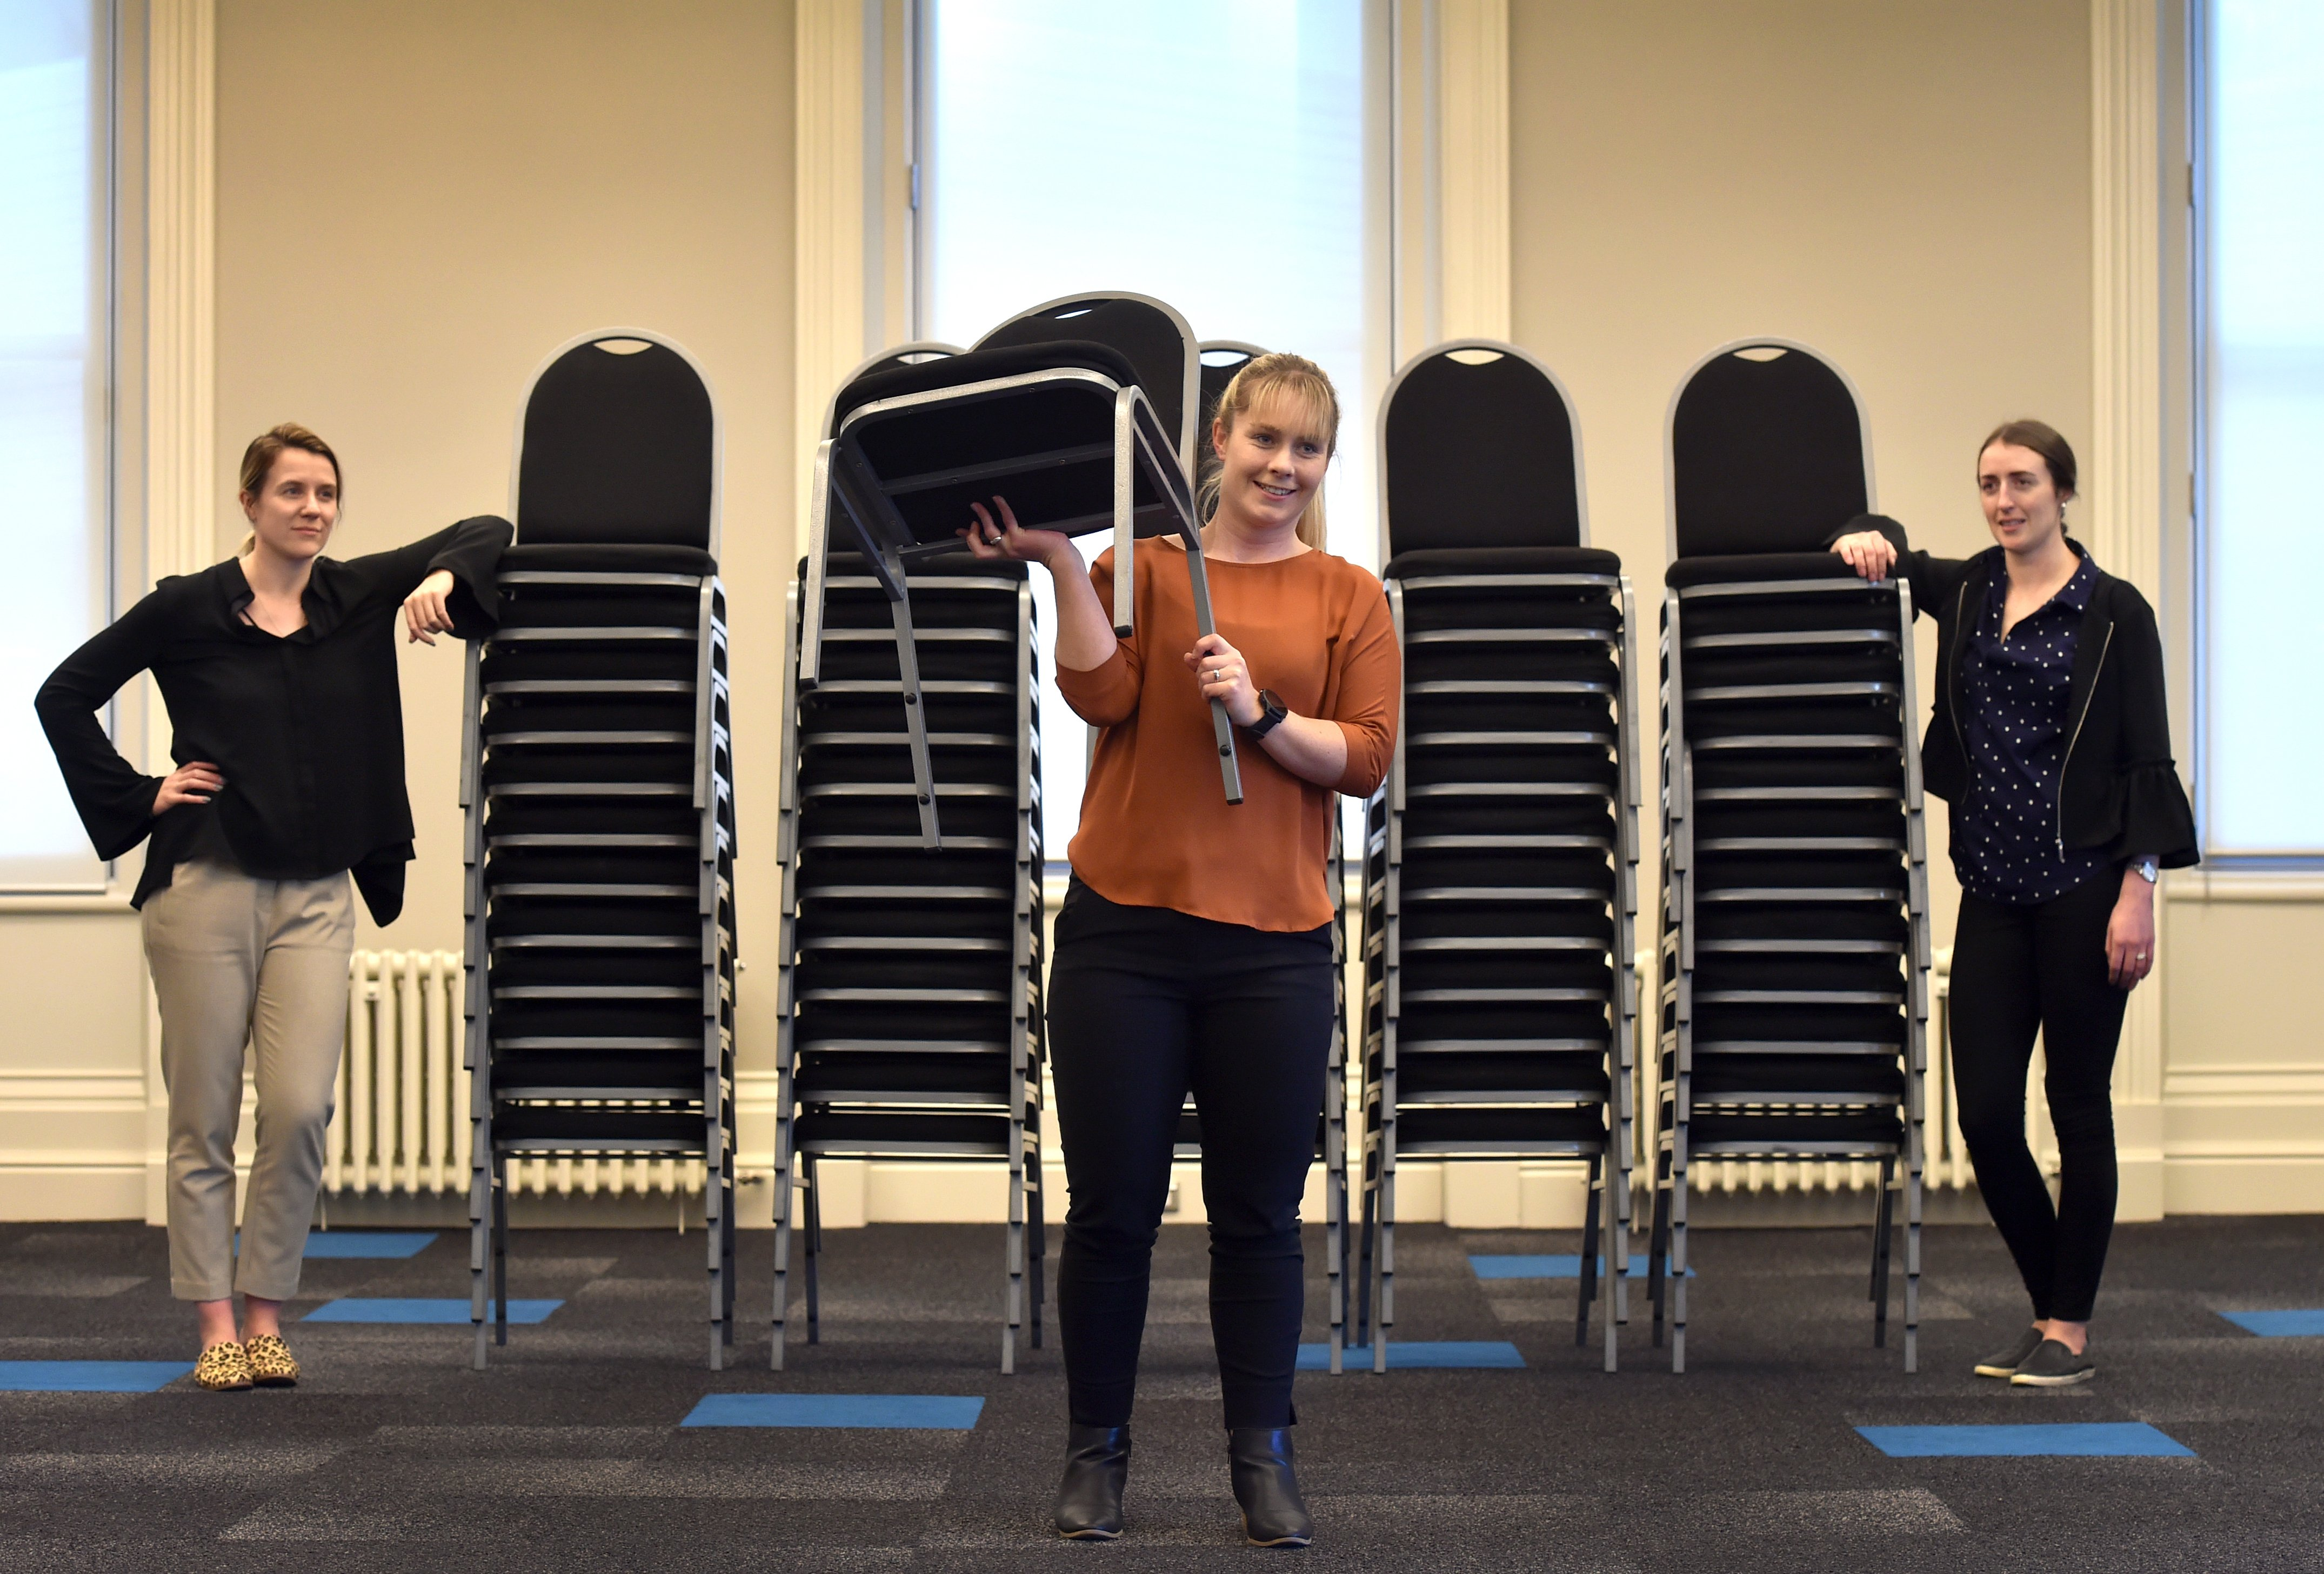 Chairs remain stacked up at the Dunedin Centre but members of the Dunedin Venues team (from left)...